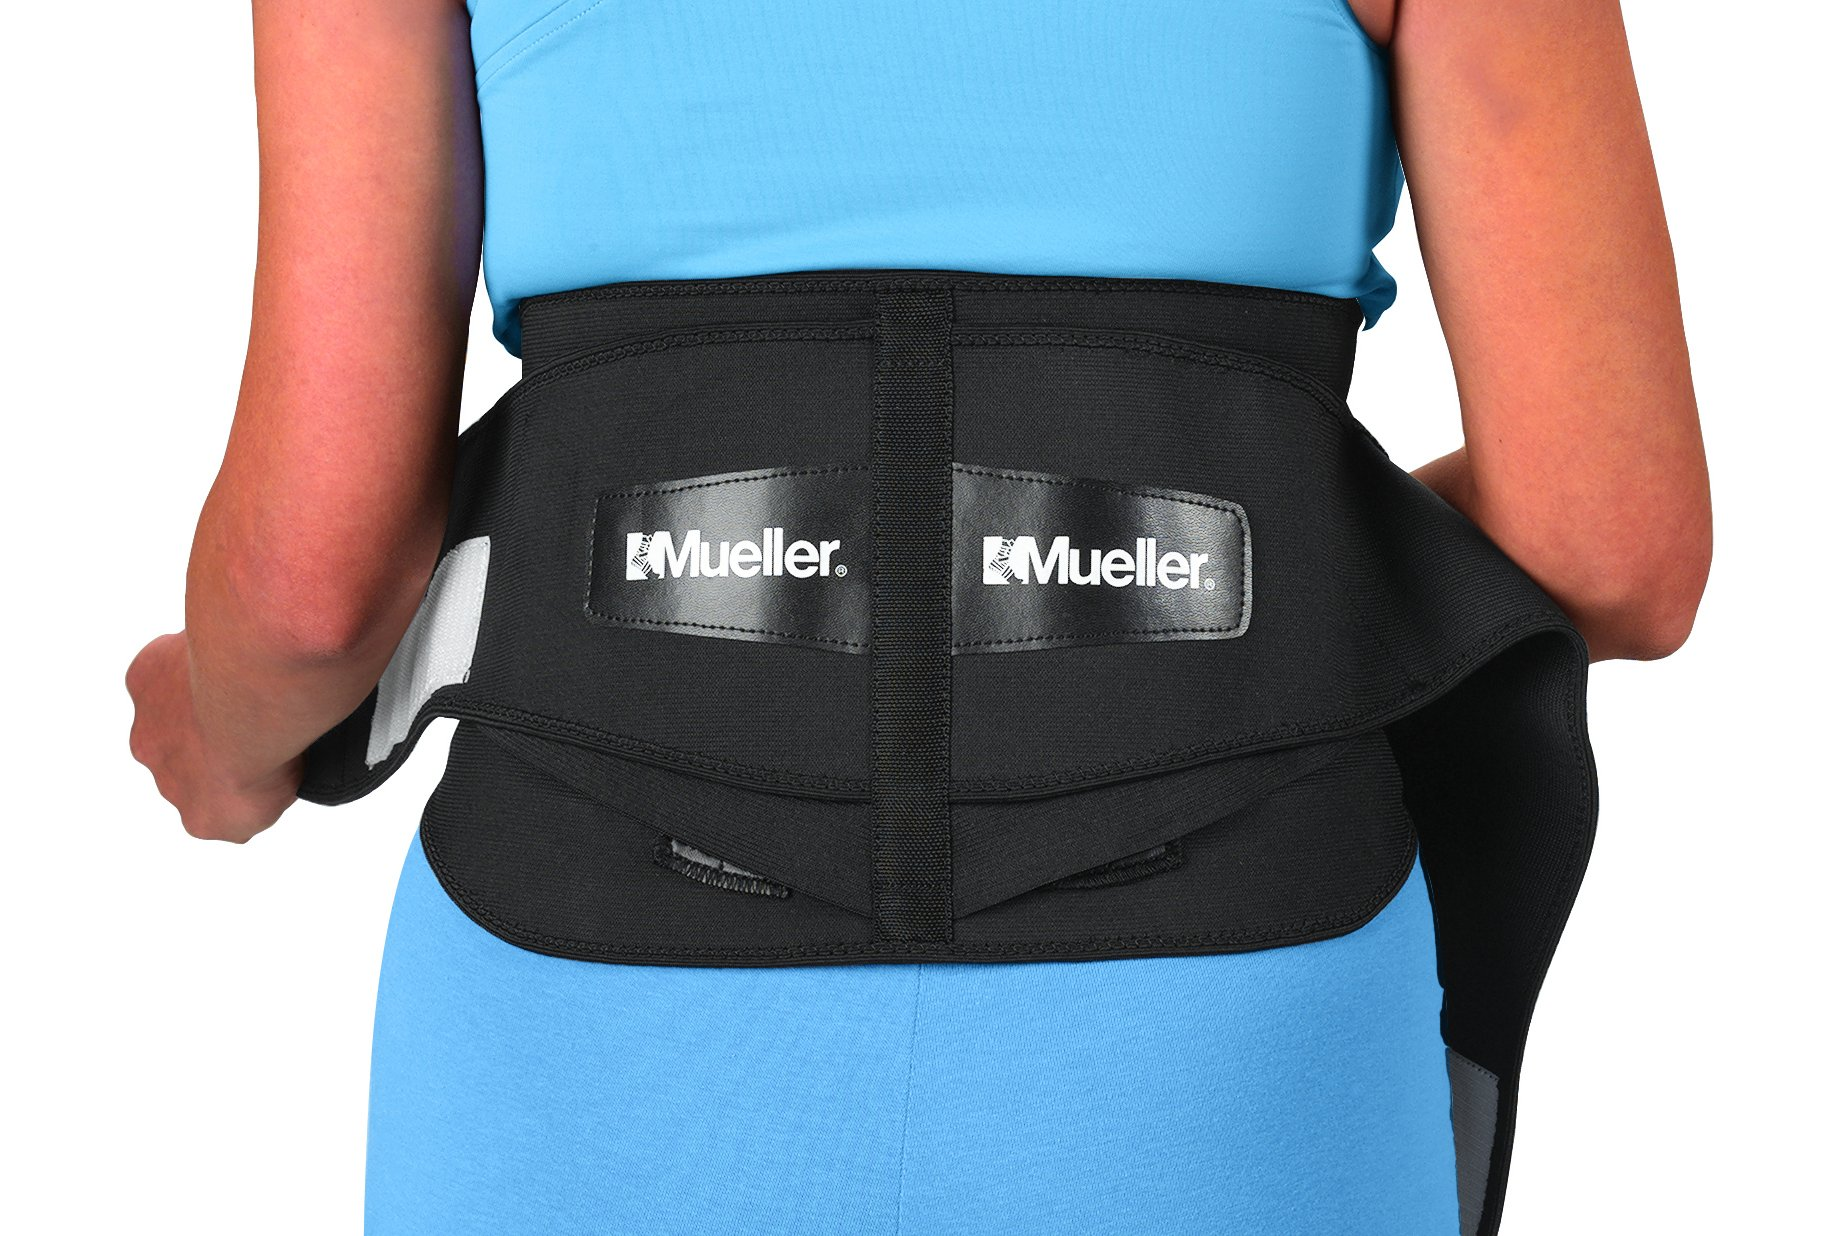 Mueller Lumbar Support Back Brace with Removable Pad, Black, Regular (28'' - 50'' waist)